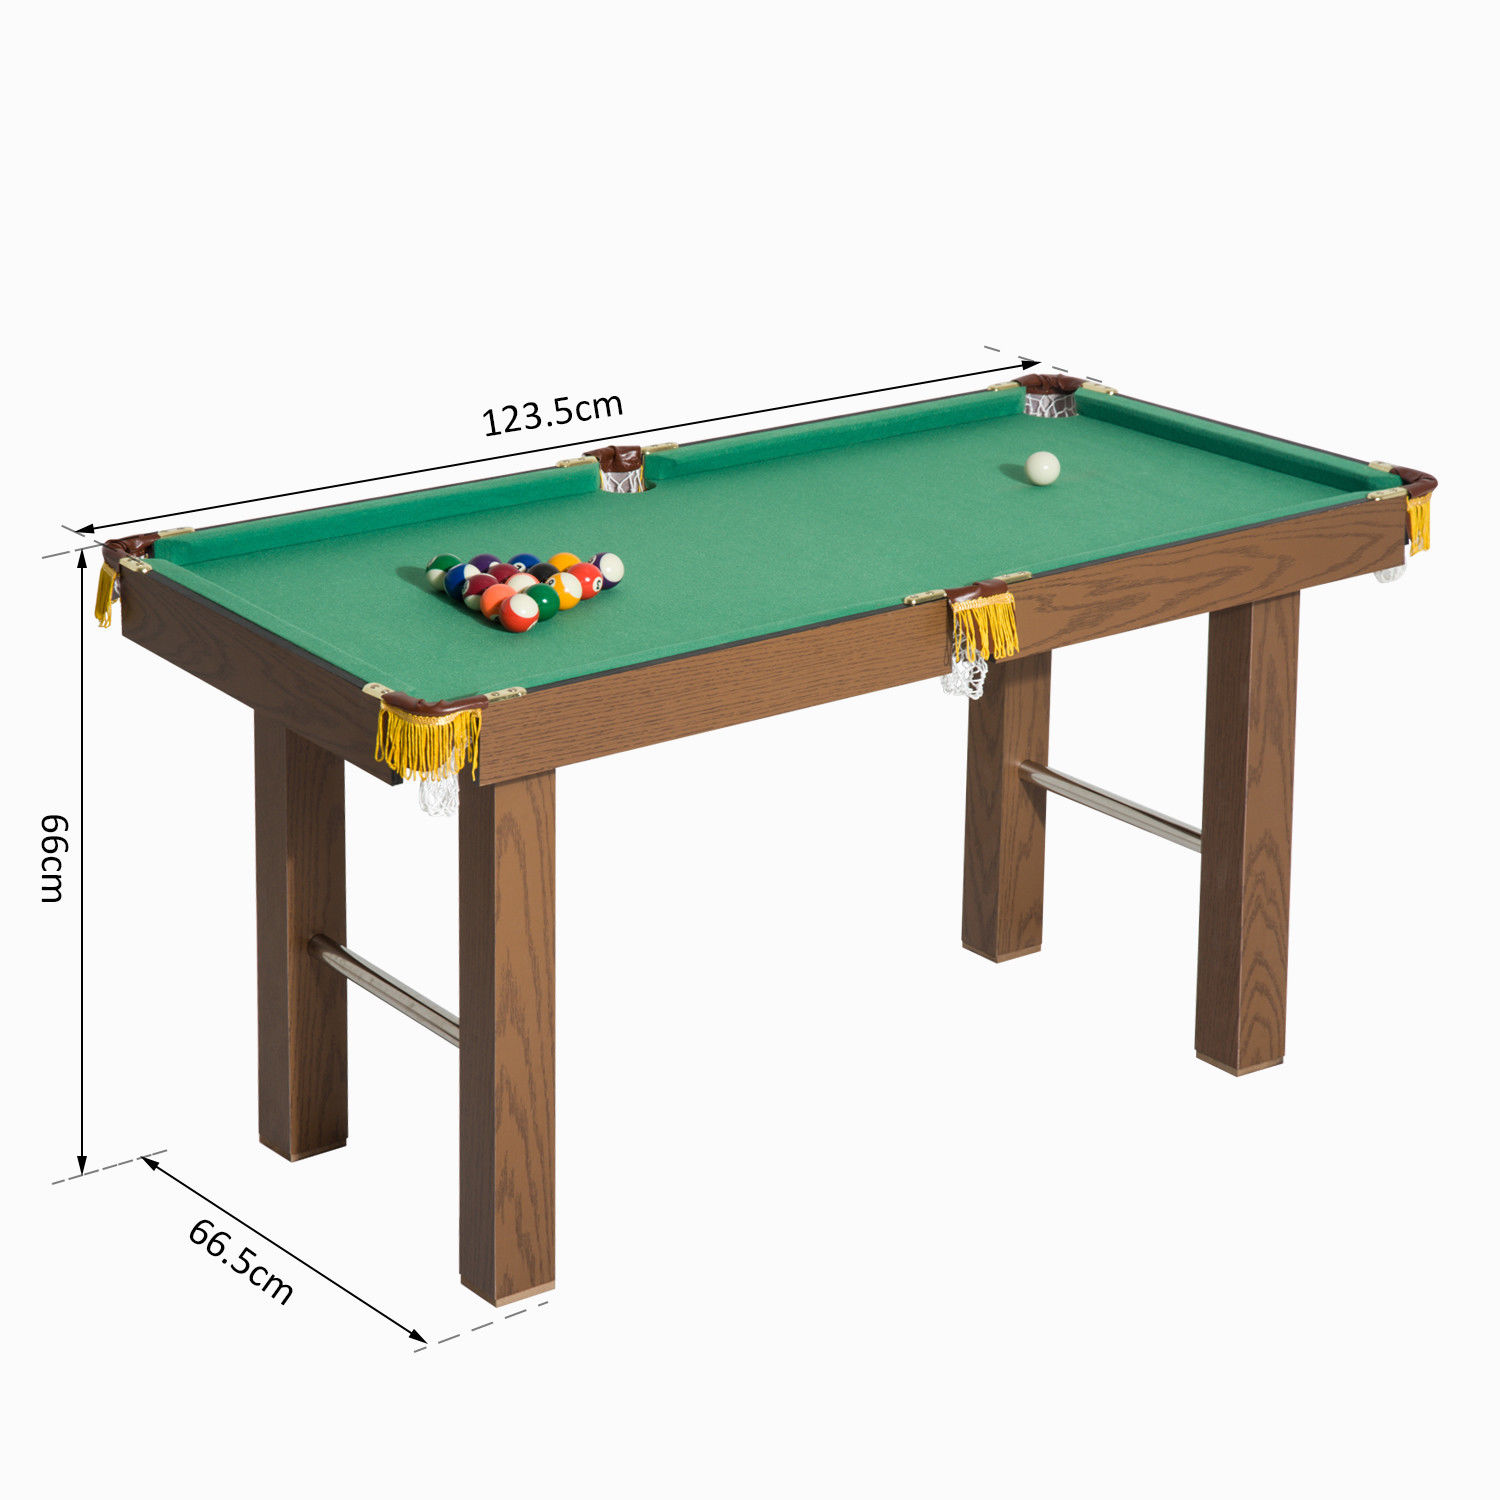 What is a Pool Types Game? 41